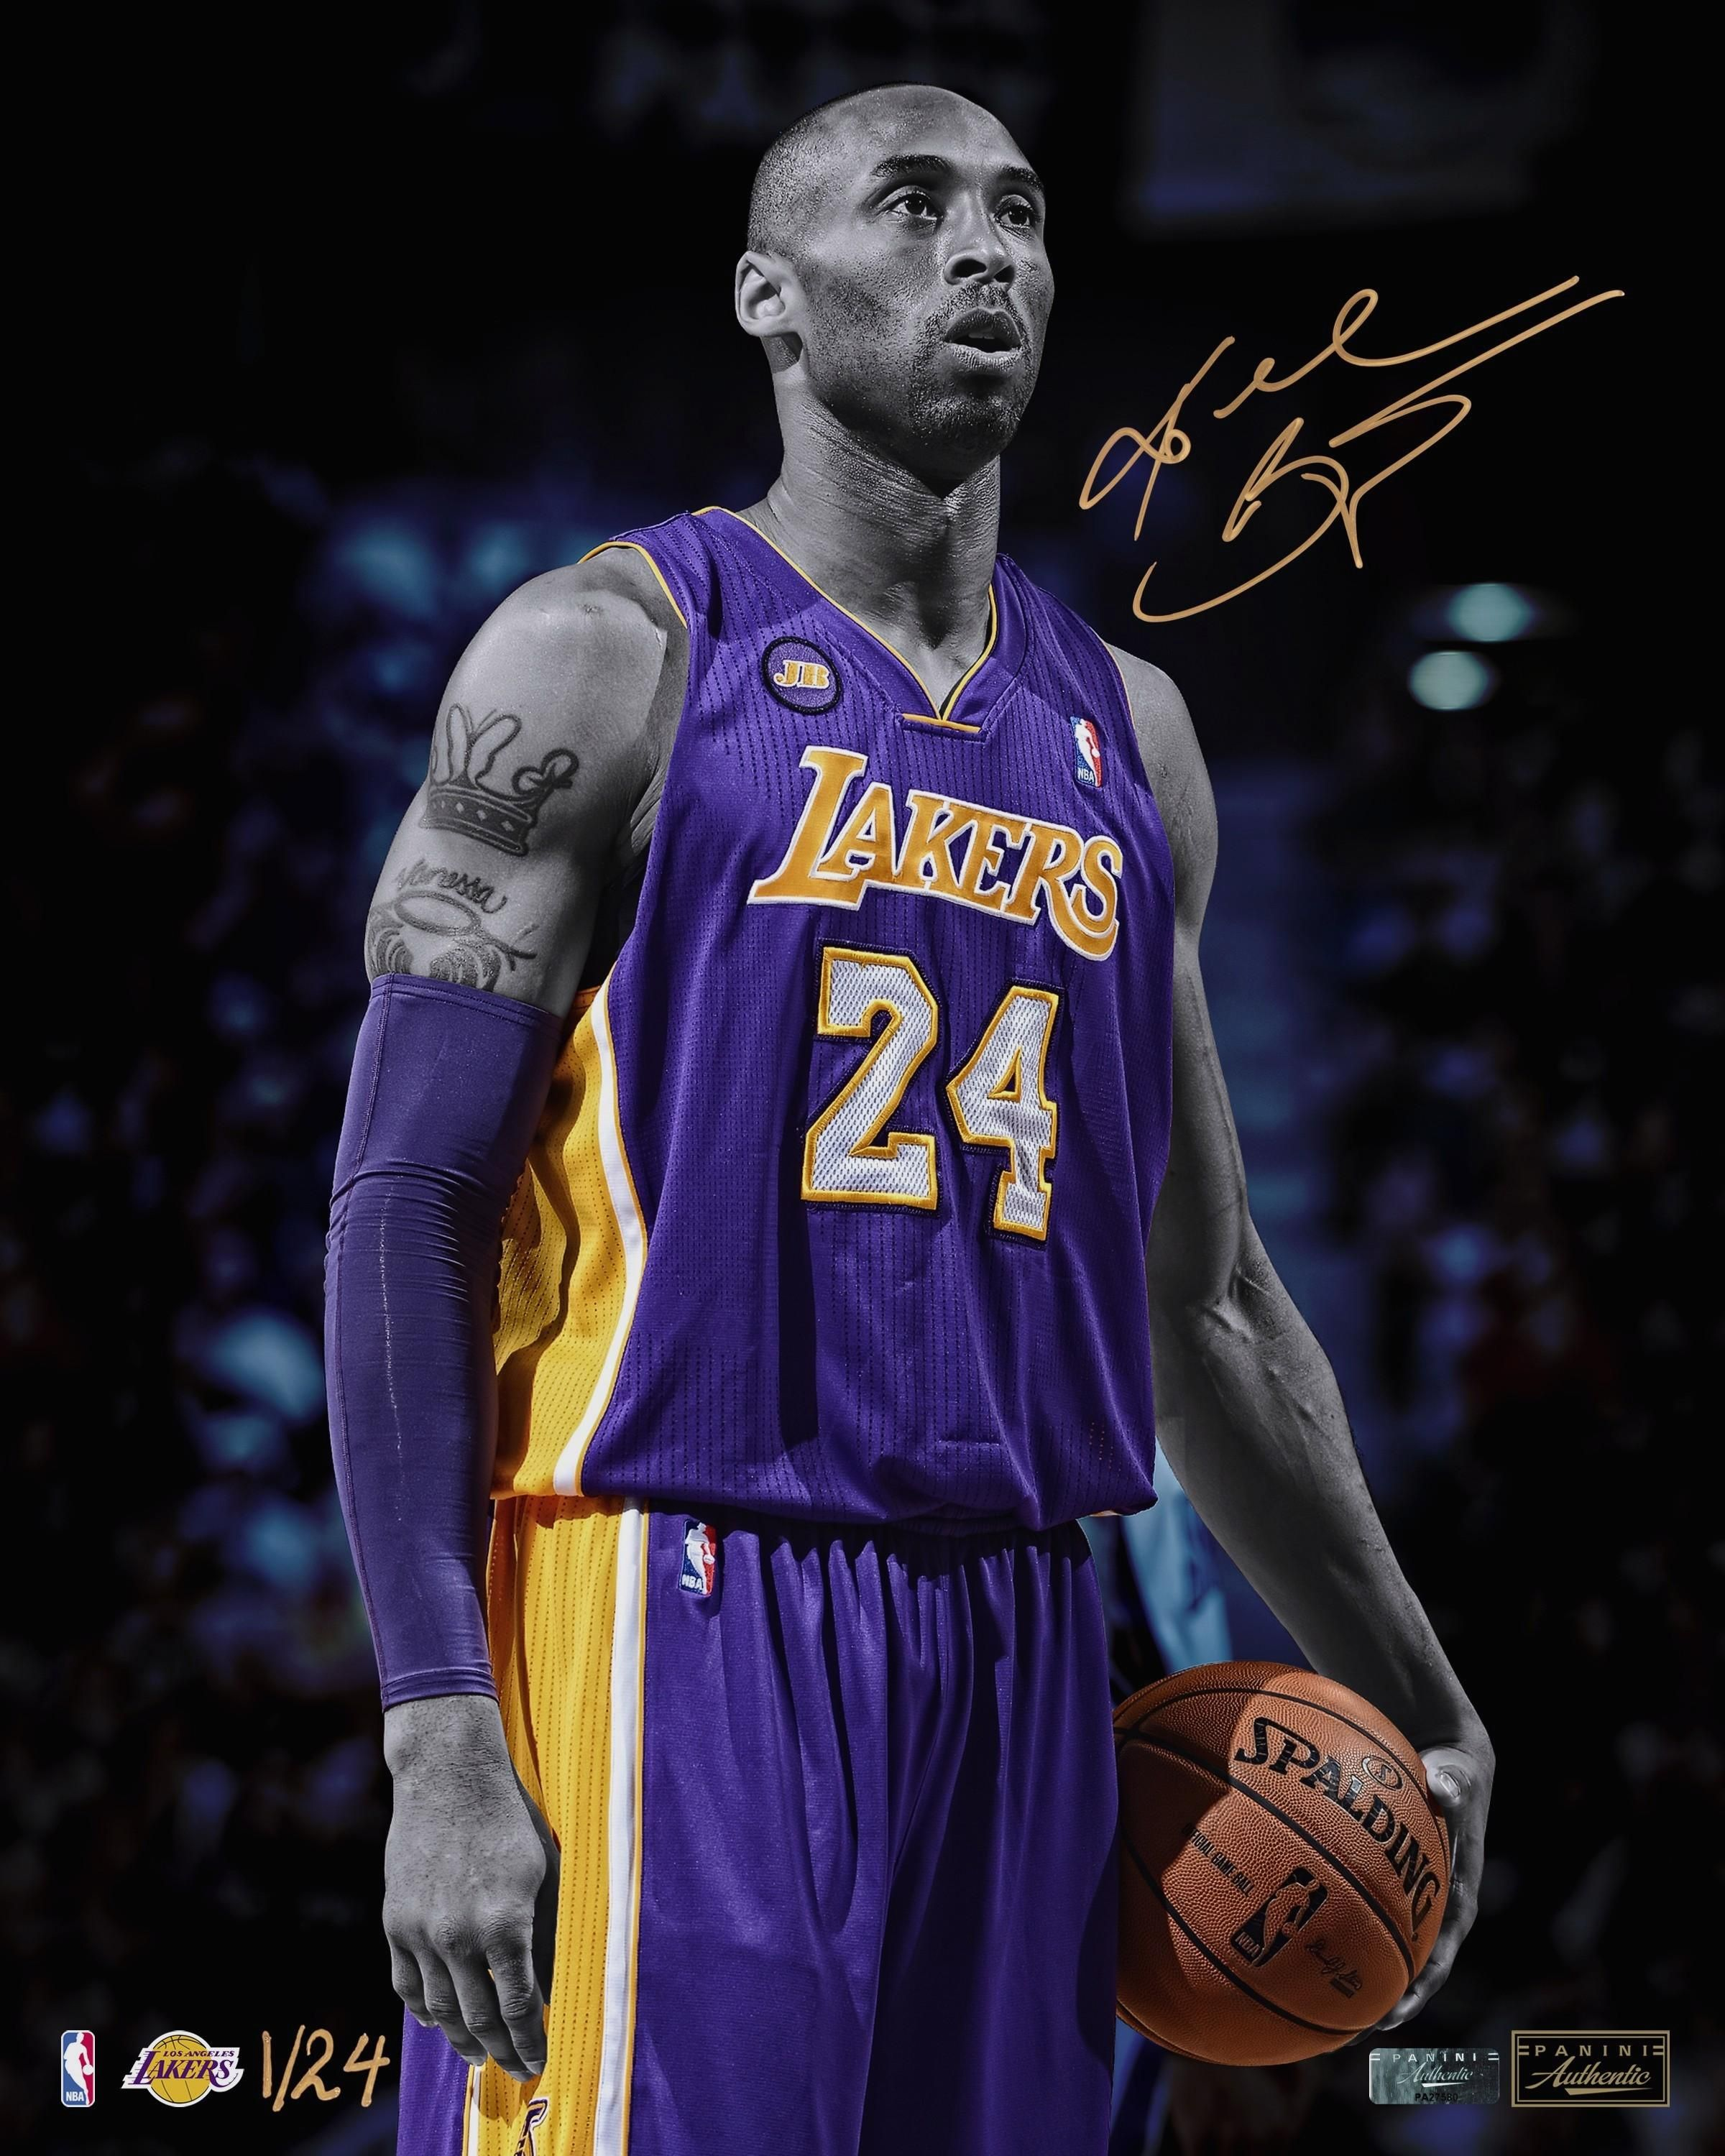 Most Inspiring Wallpaper Logo Kobe Bryant - 480f95e5861055f5d4f8c7cb6240f150  Best Photo Reference_708430.jpg